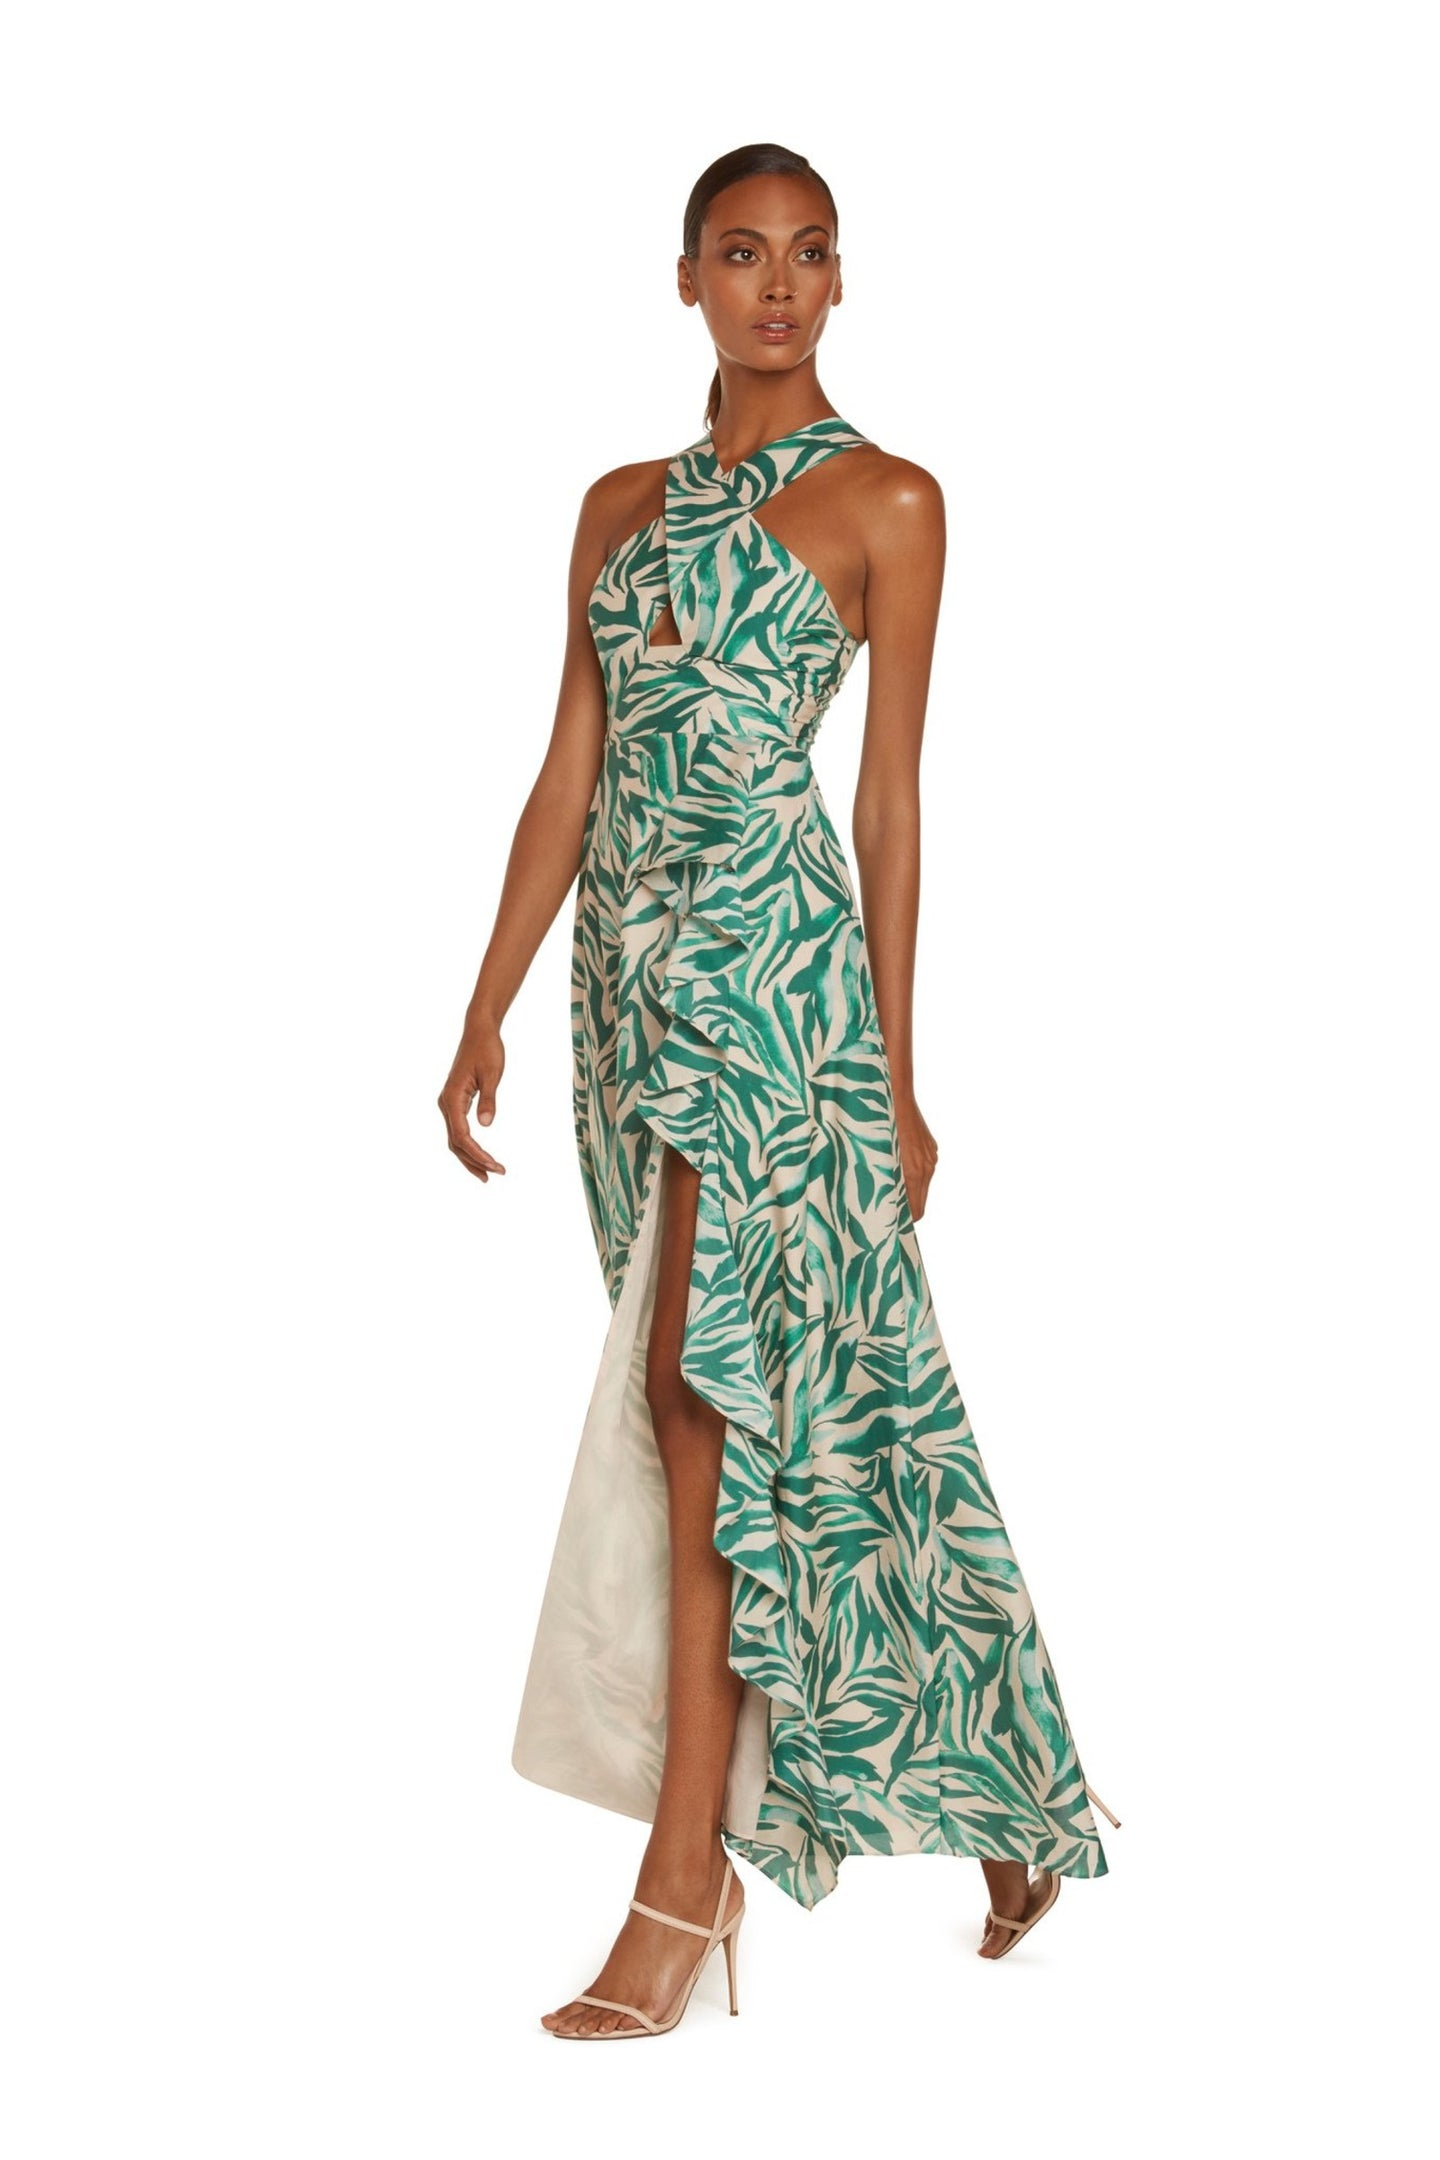 Kathy Halter Maxi Dress in Teal Zebra Silk Cotton Voile with High Slit